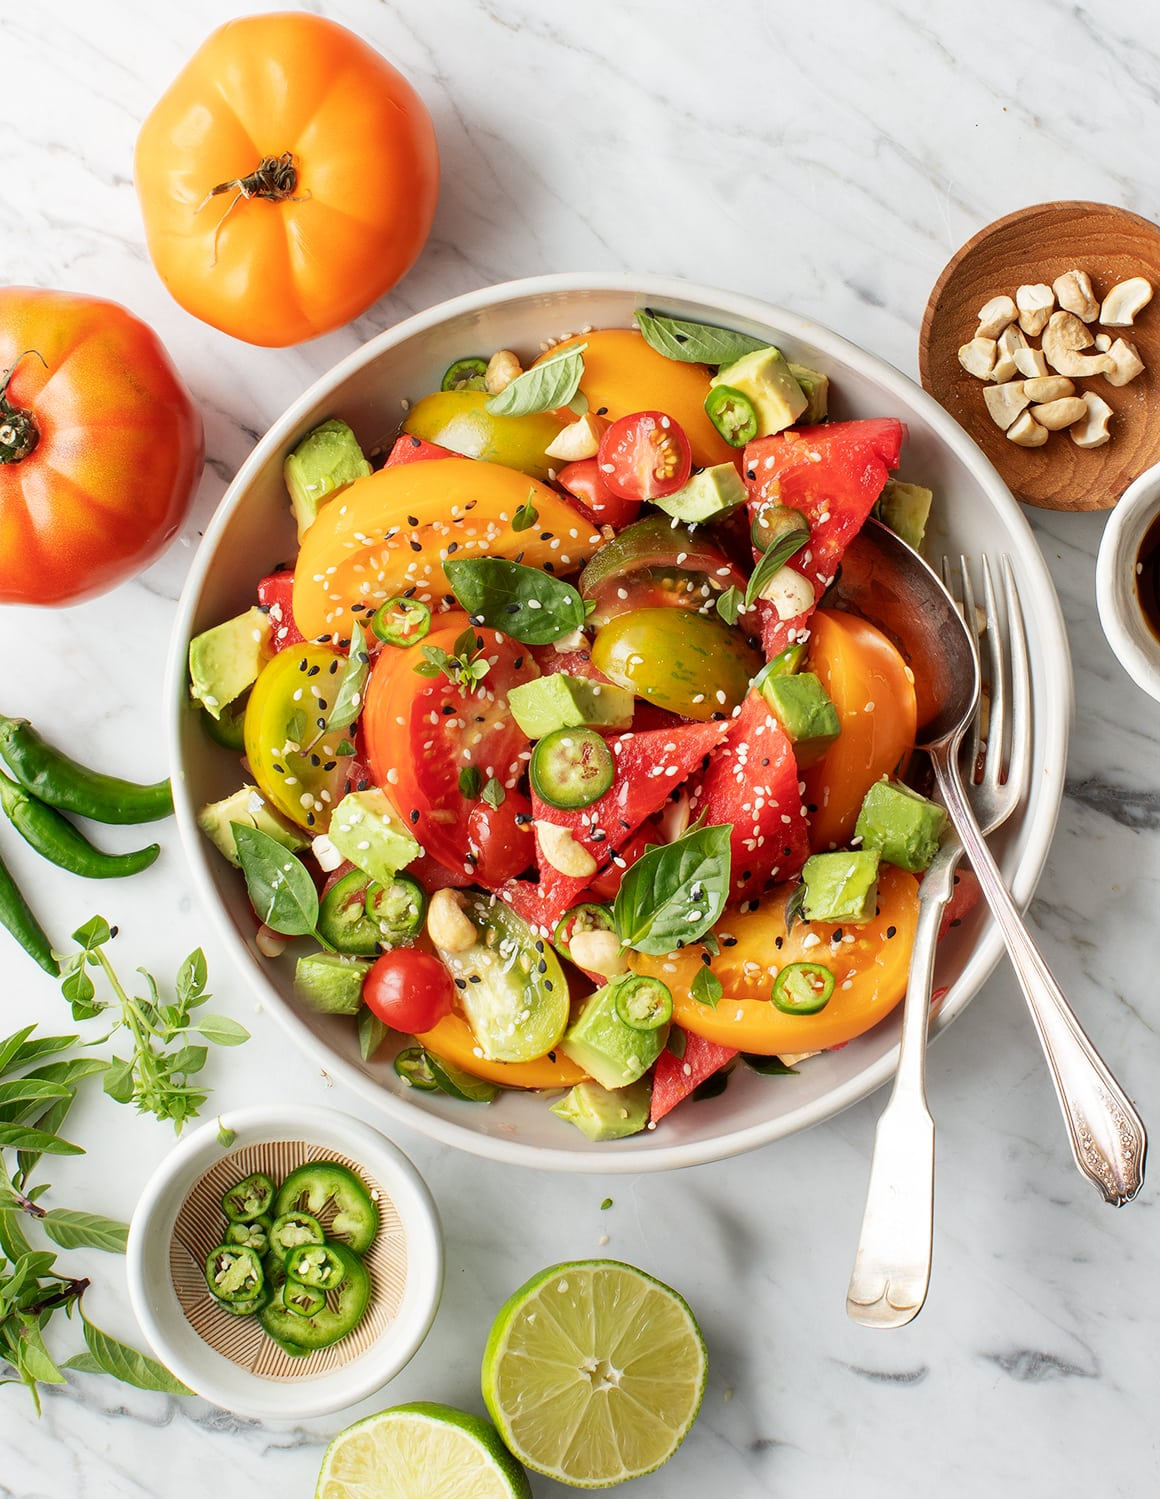 Watermelon Salad with Tomato & Avocado